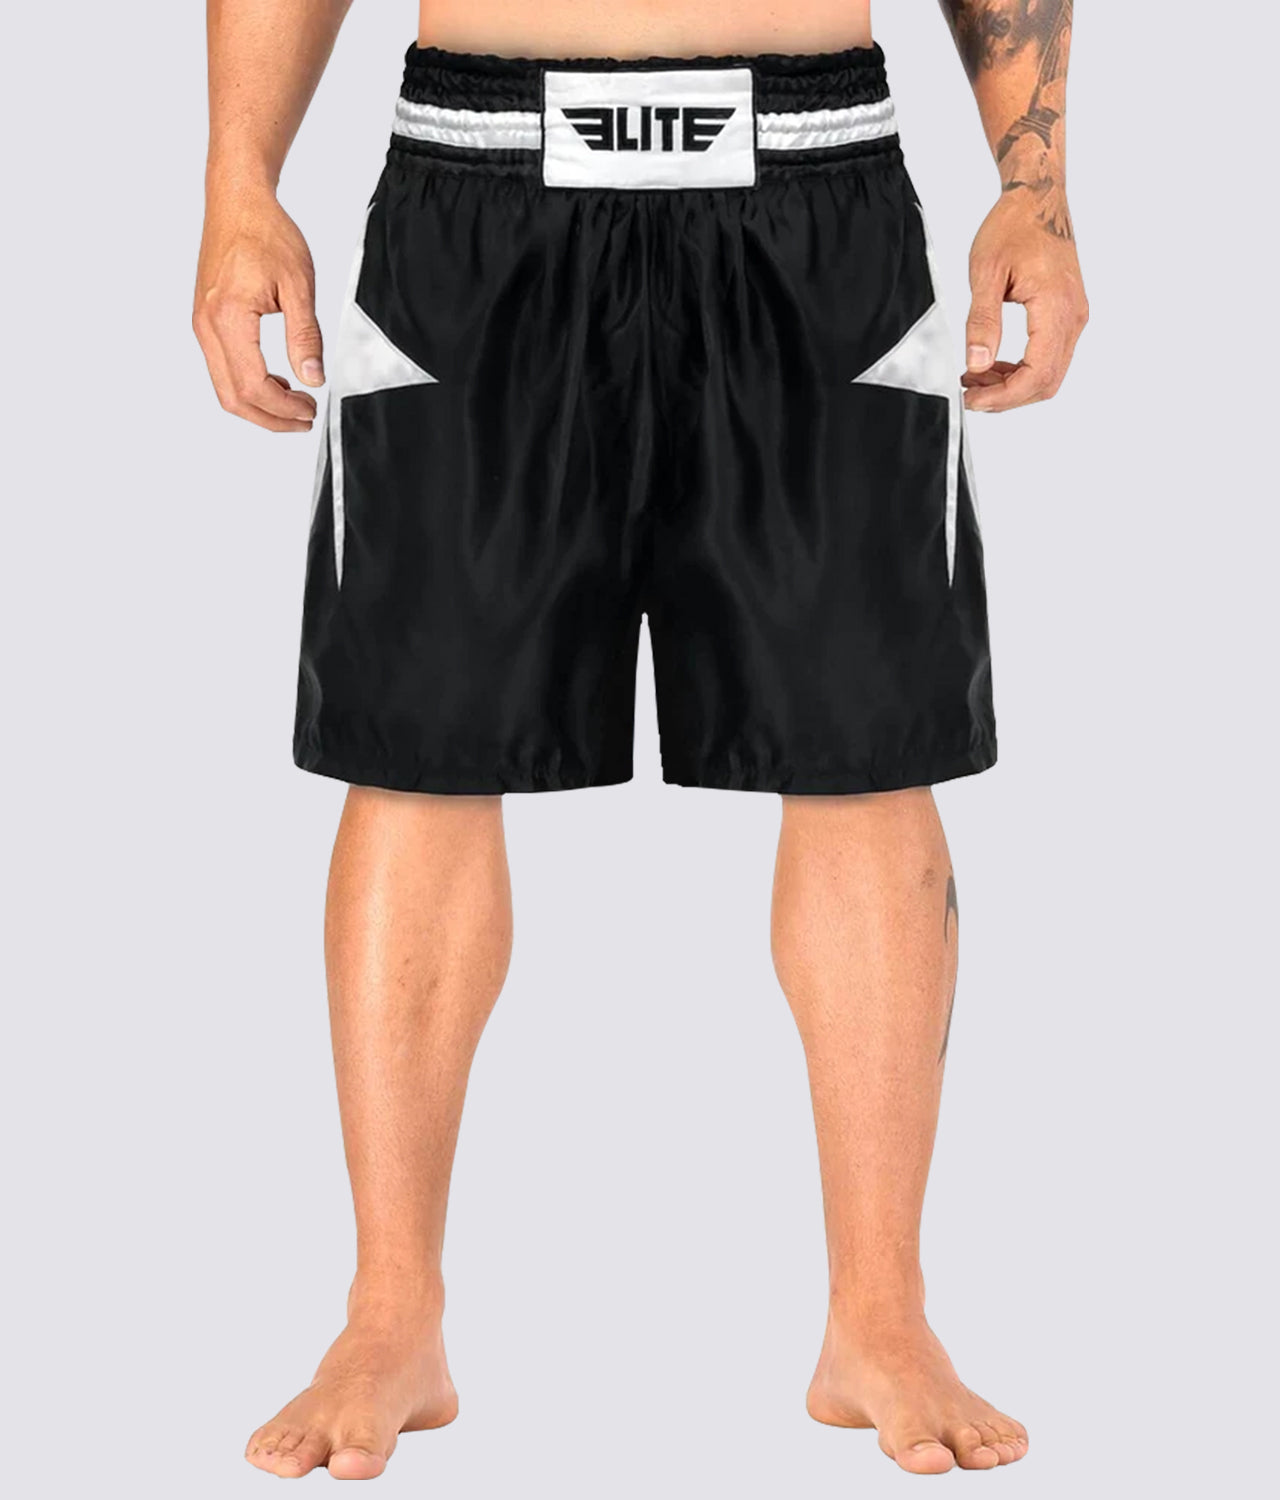 Elite Sports Star Series Sublimation Extreme Softness Black/White Boxing Shorts